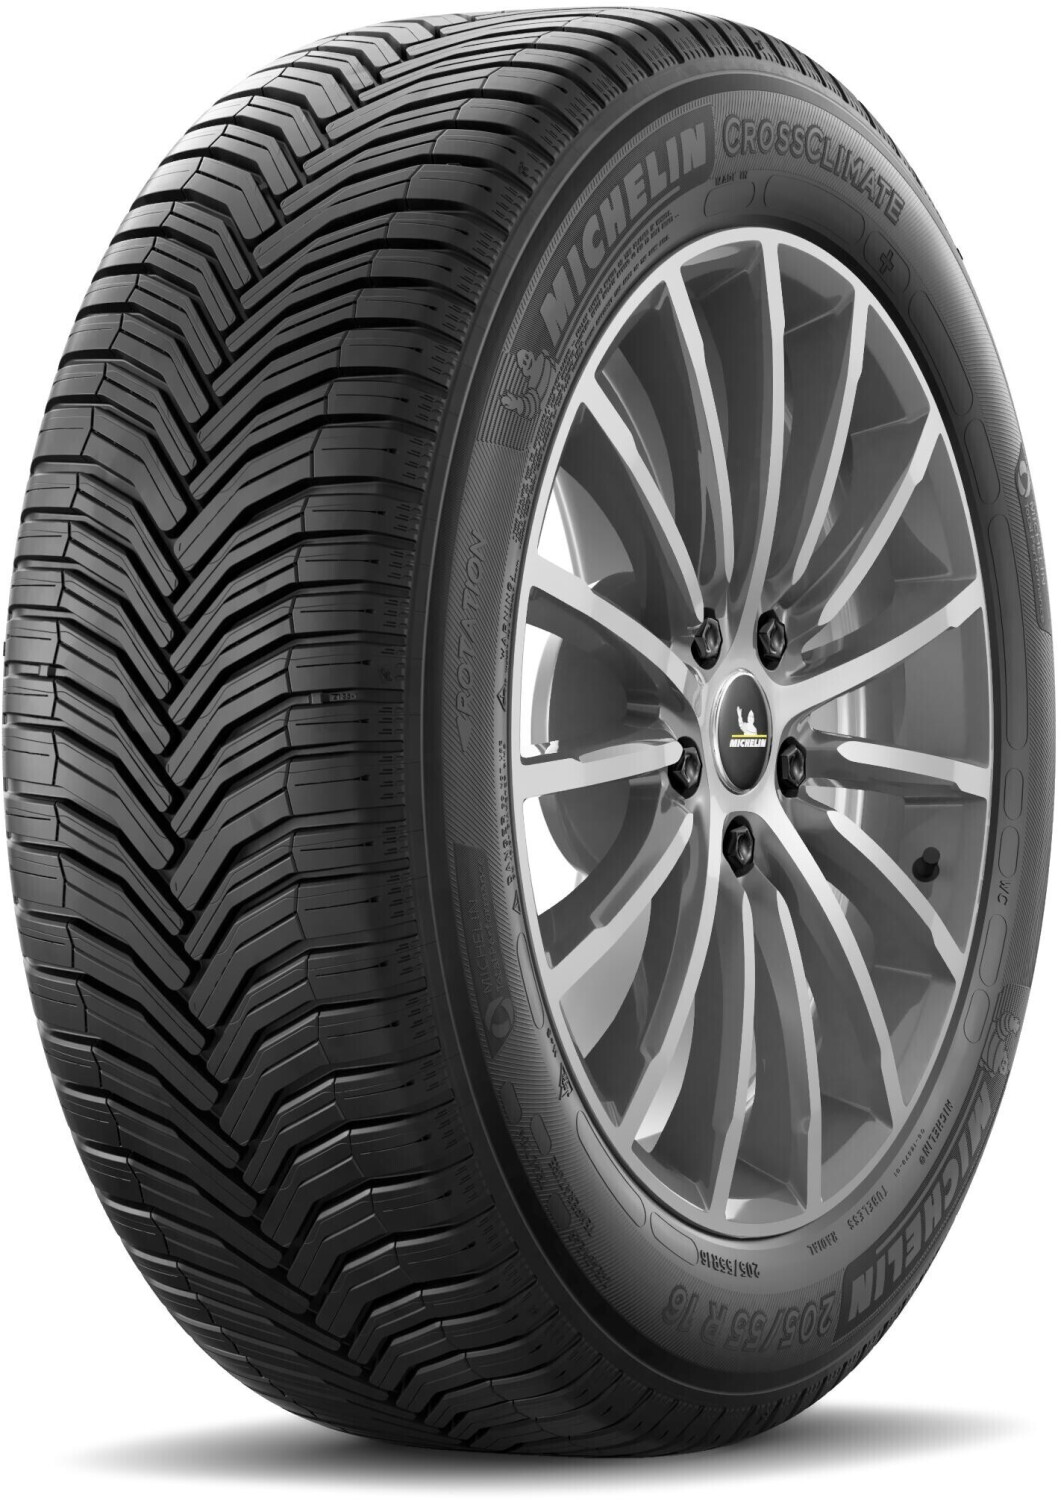 Michelin CrossClimate+ 205/55 R17 91V